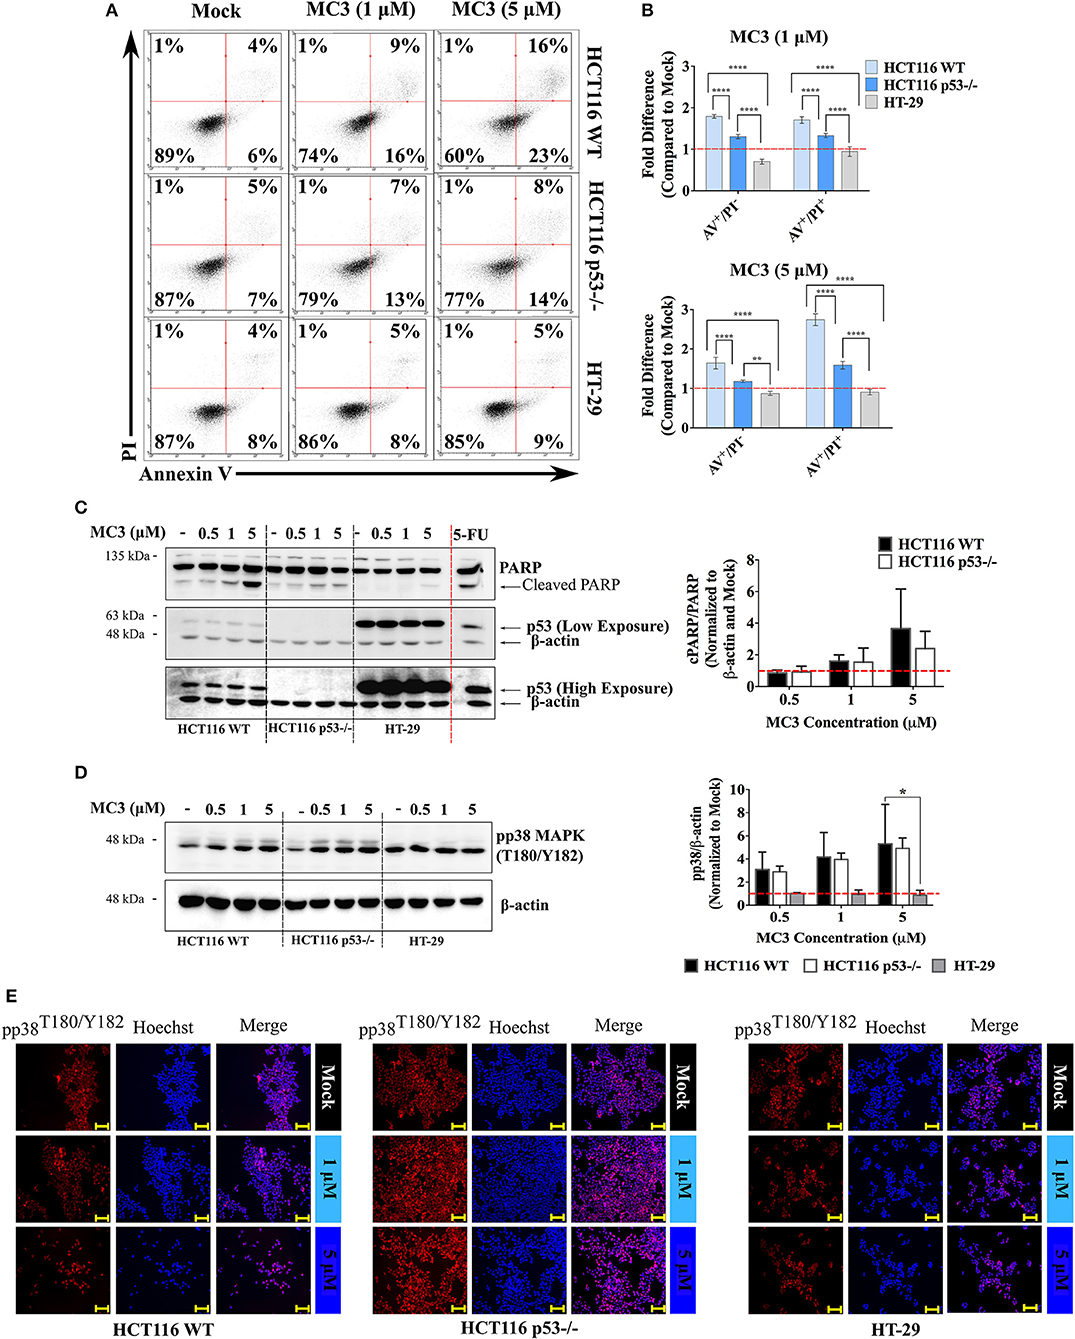 Frontiers | p53-Dependent Anti-Proliferative and Pro